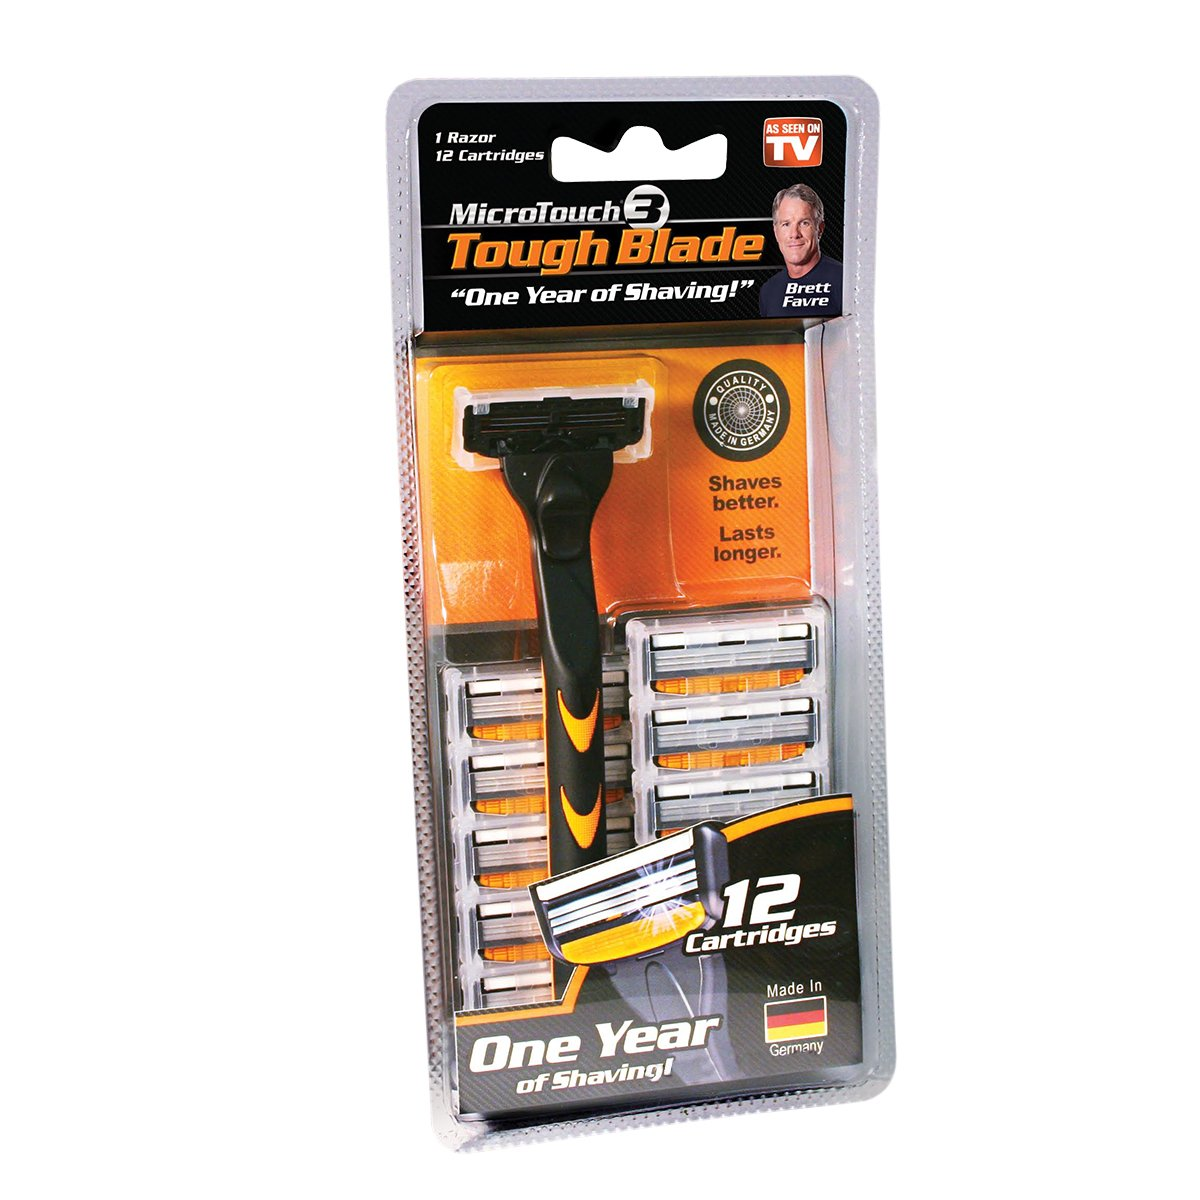 Micro Touch Triple-Blade Razor with 6 Refill Cartridges MTTRIBLC4